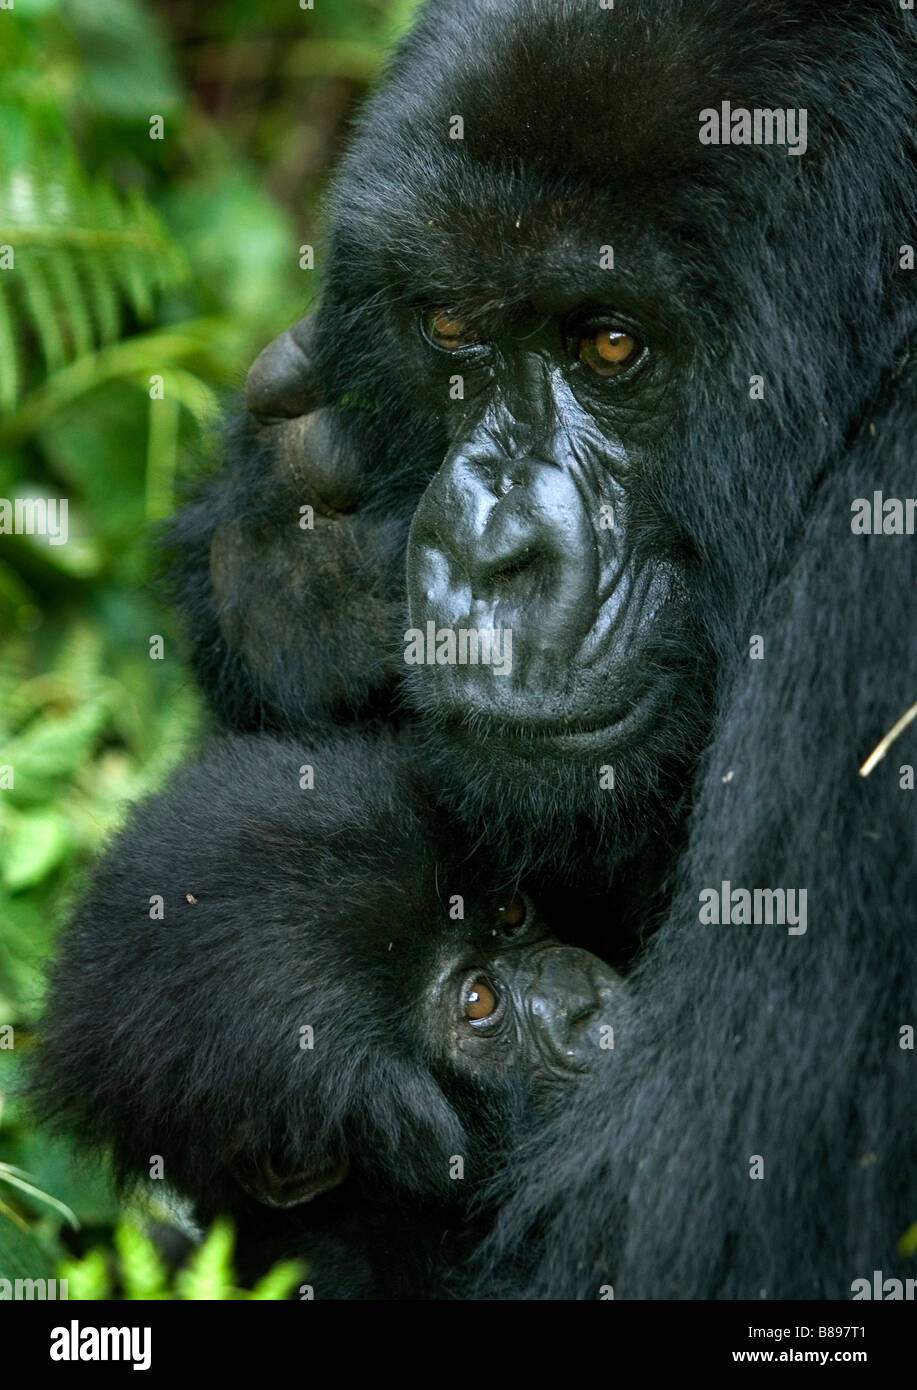 Mother feeds baby mountain gorilla gorilla gorilla beringei in the Volcanoes National Park in northwestern Rwanda - Stock Image